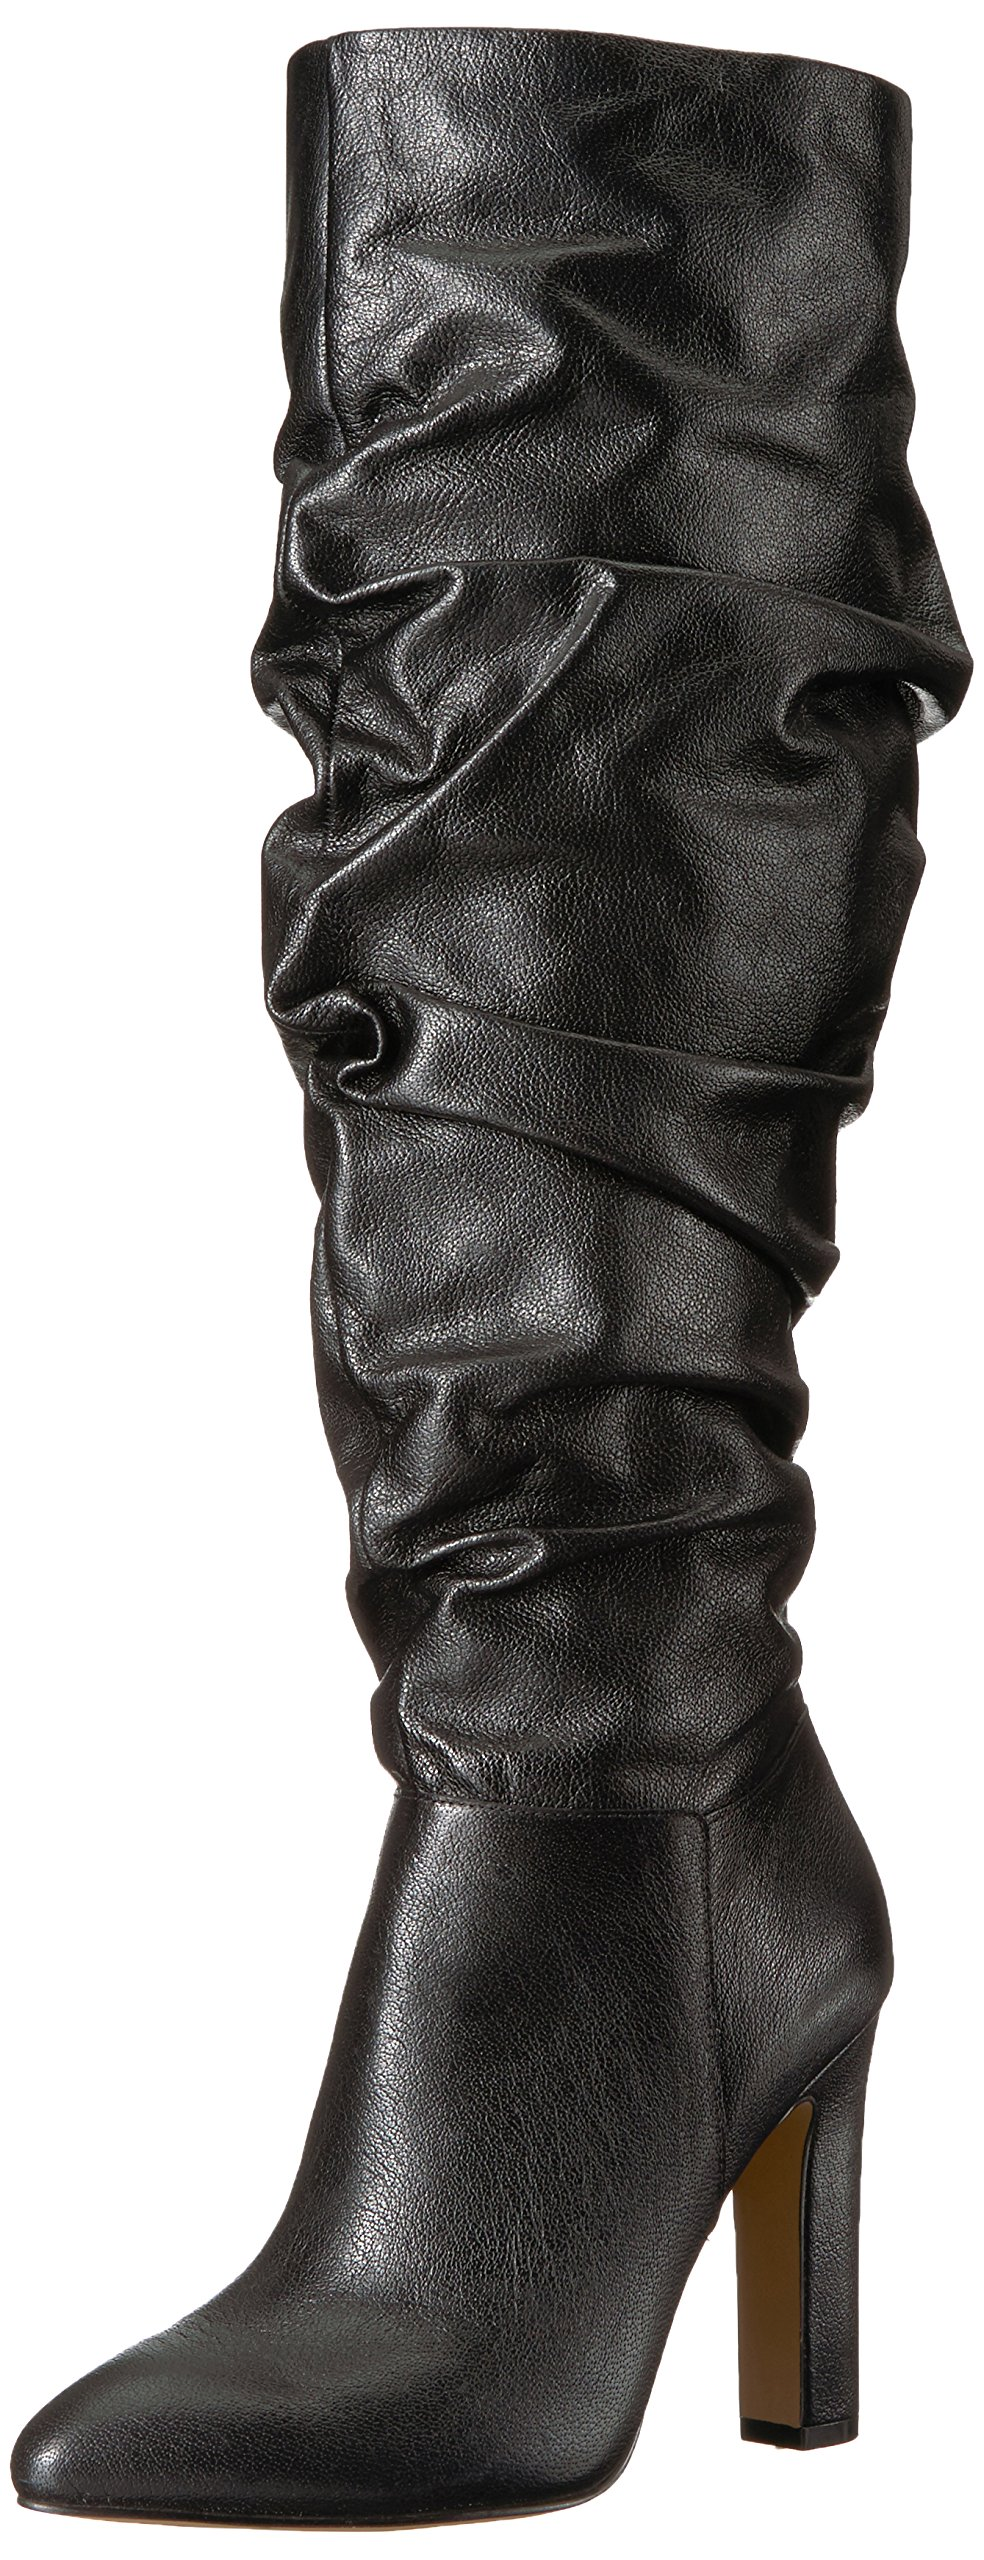 The Fix Women's Kennedi Pointed-Toe to-The-Knee Slouch Boot, Black, 8.5 B US